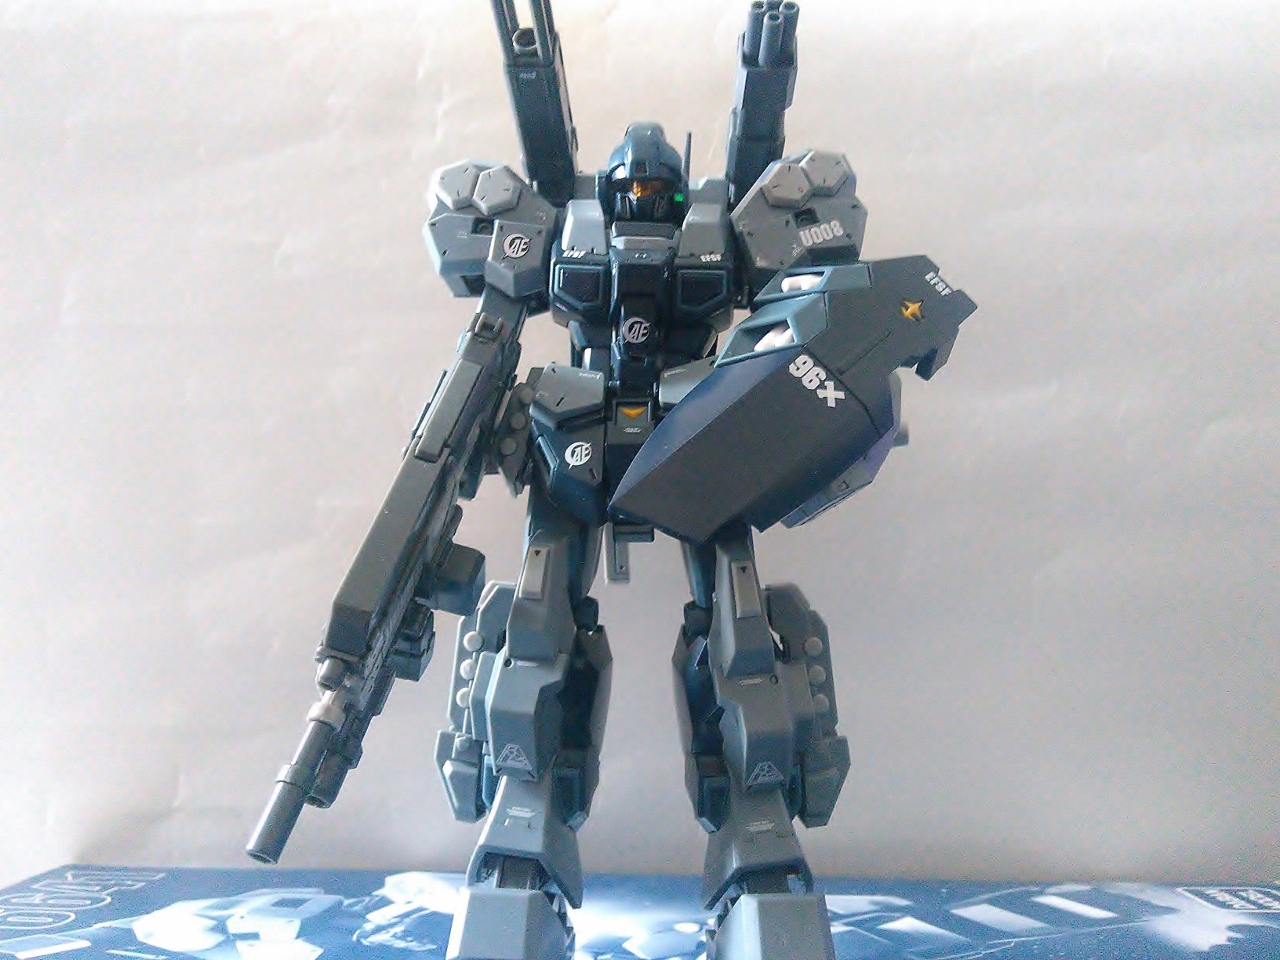 Pgrg Mghg Mg Jesta Cannon Daban Review